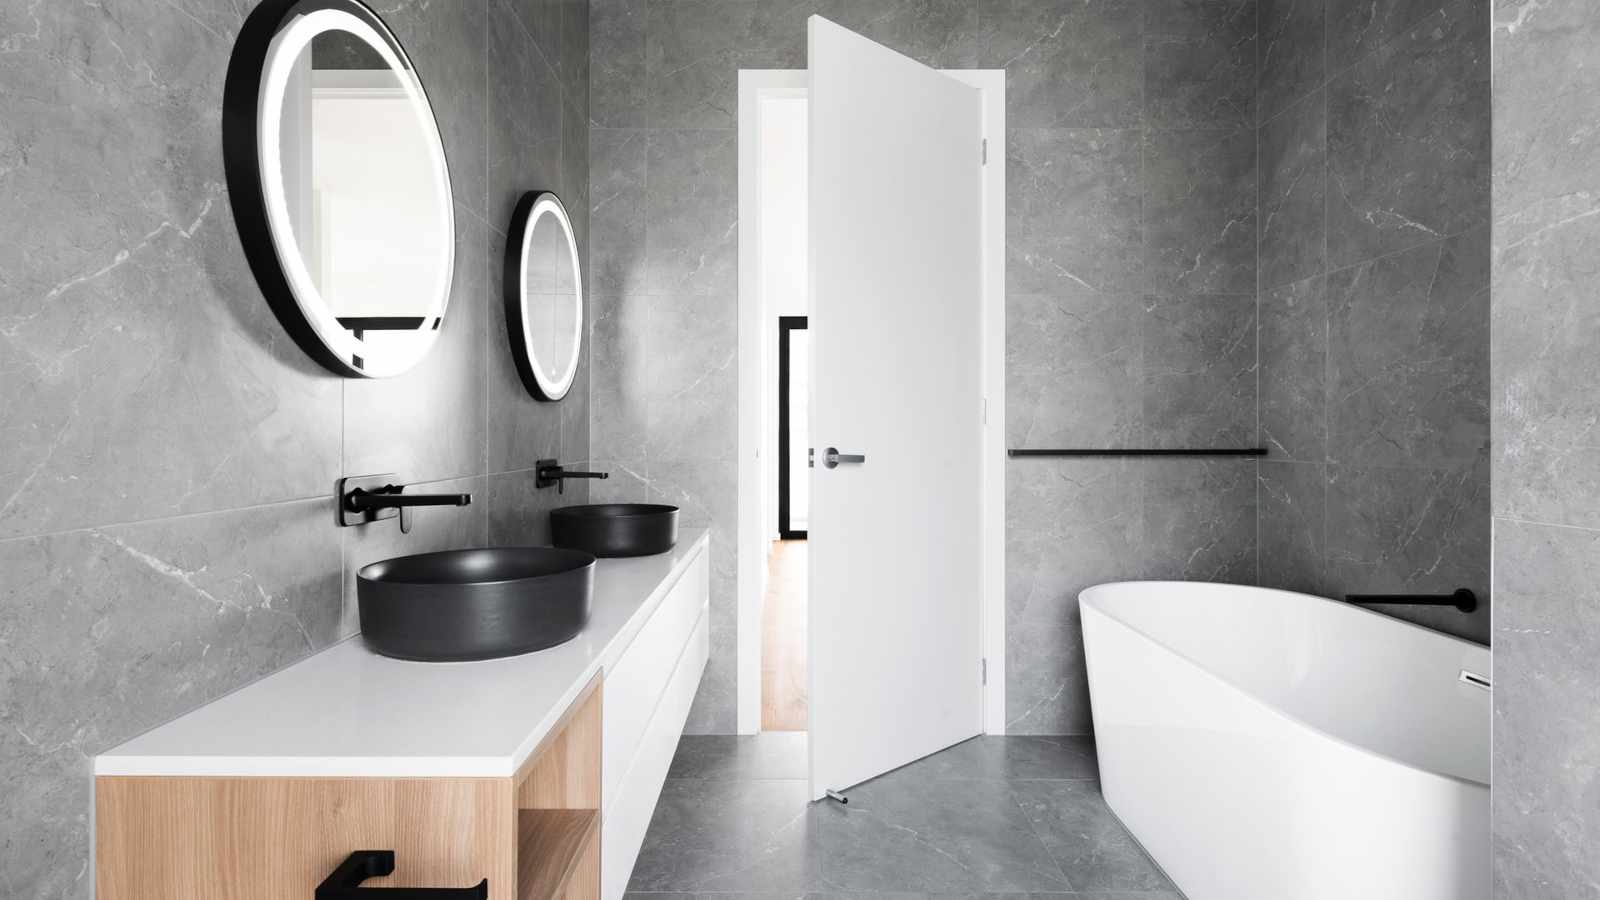 Design ideas for your guest bathroom